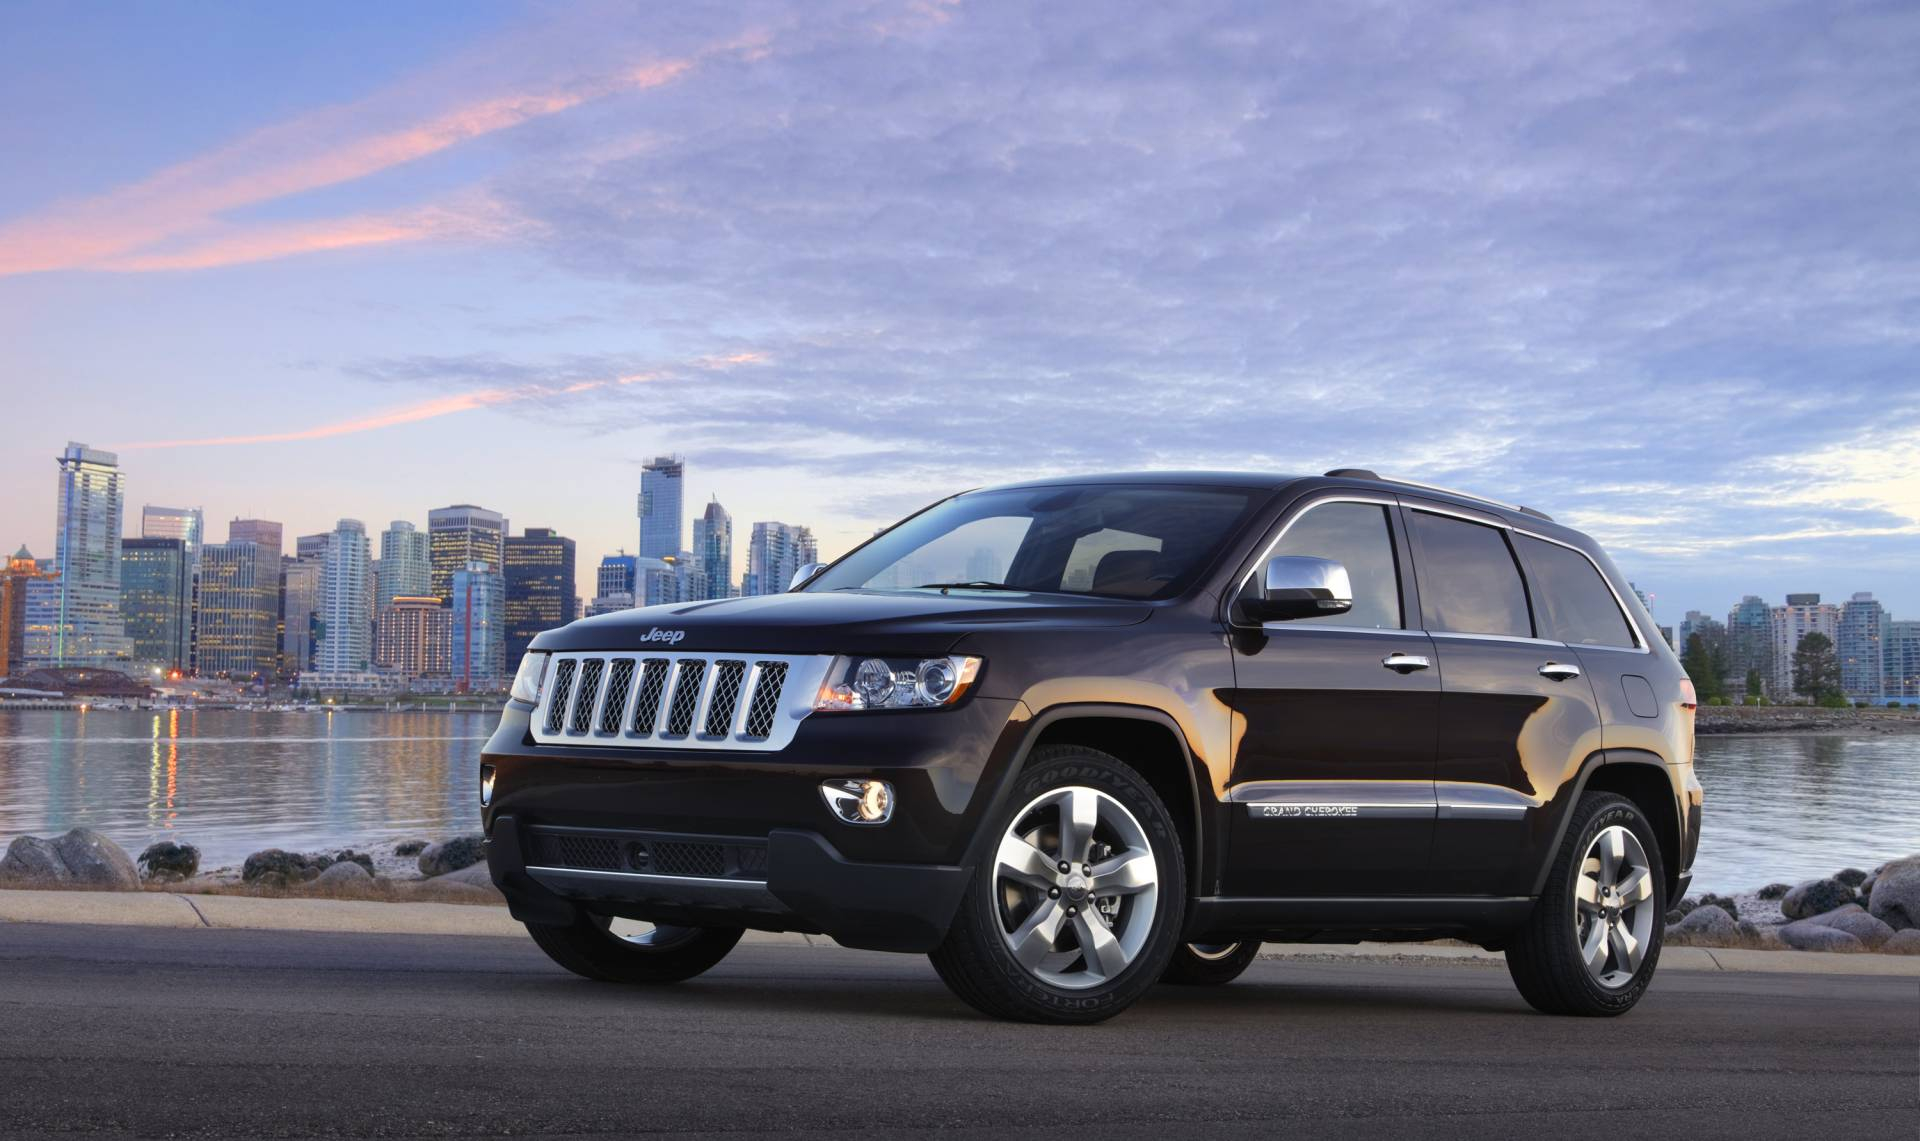 2013 Jeep Grand Cherokee News and Information